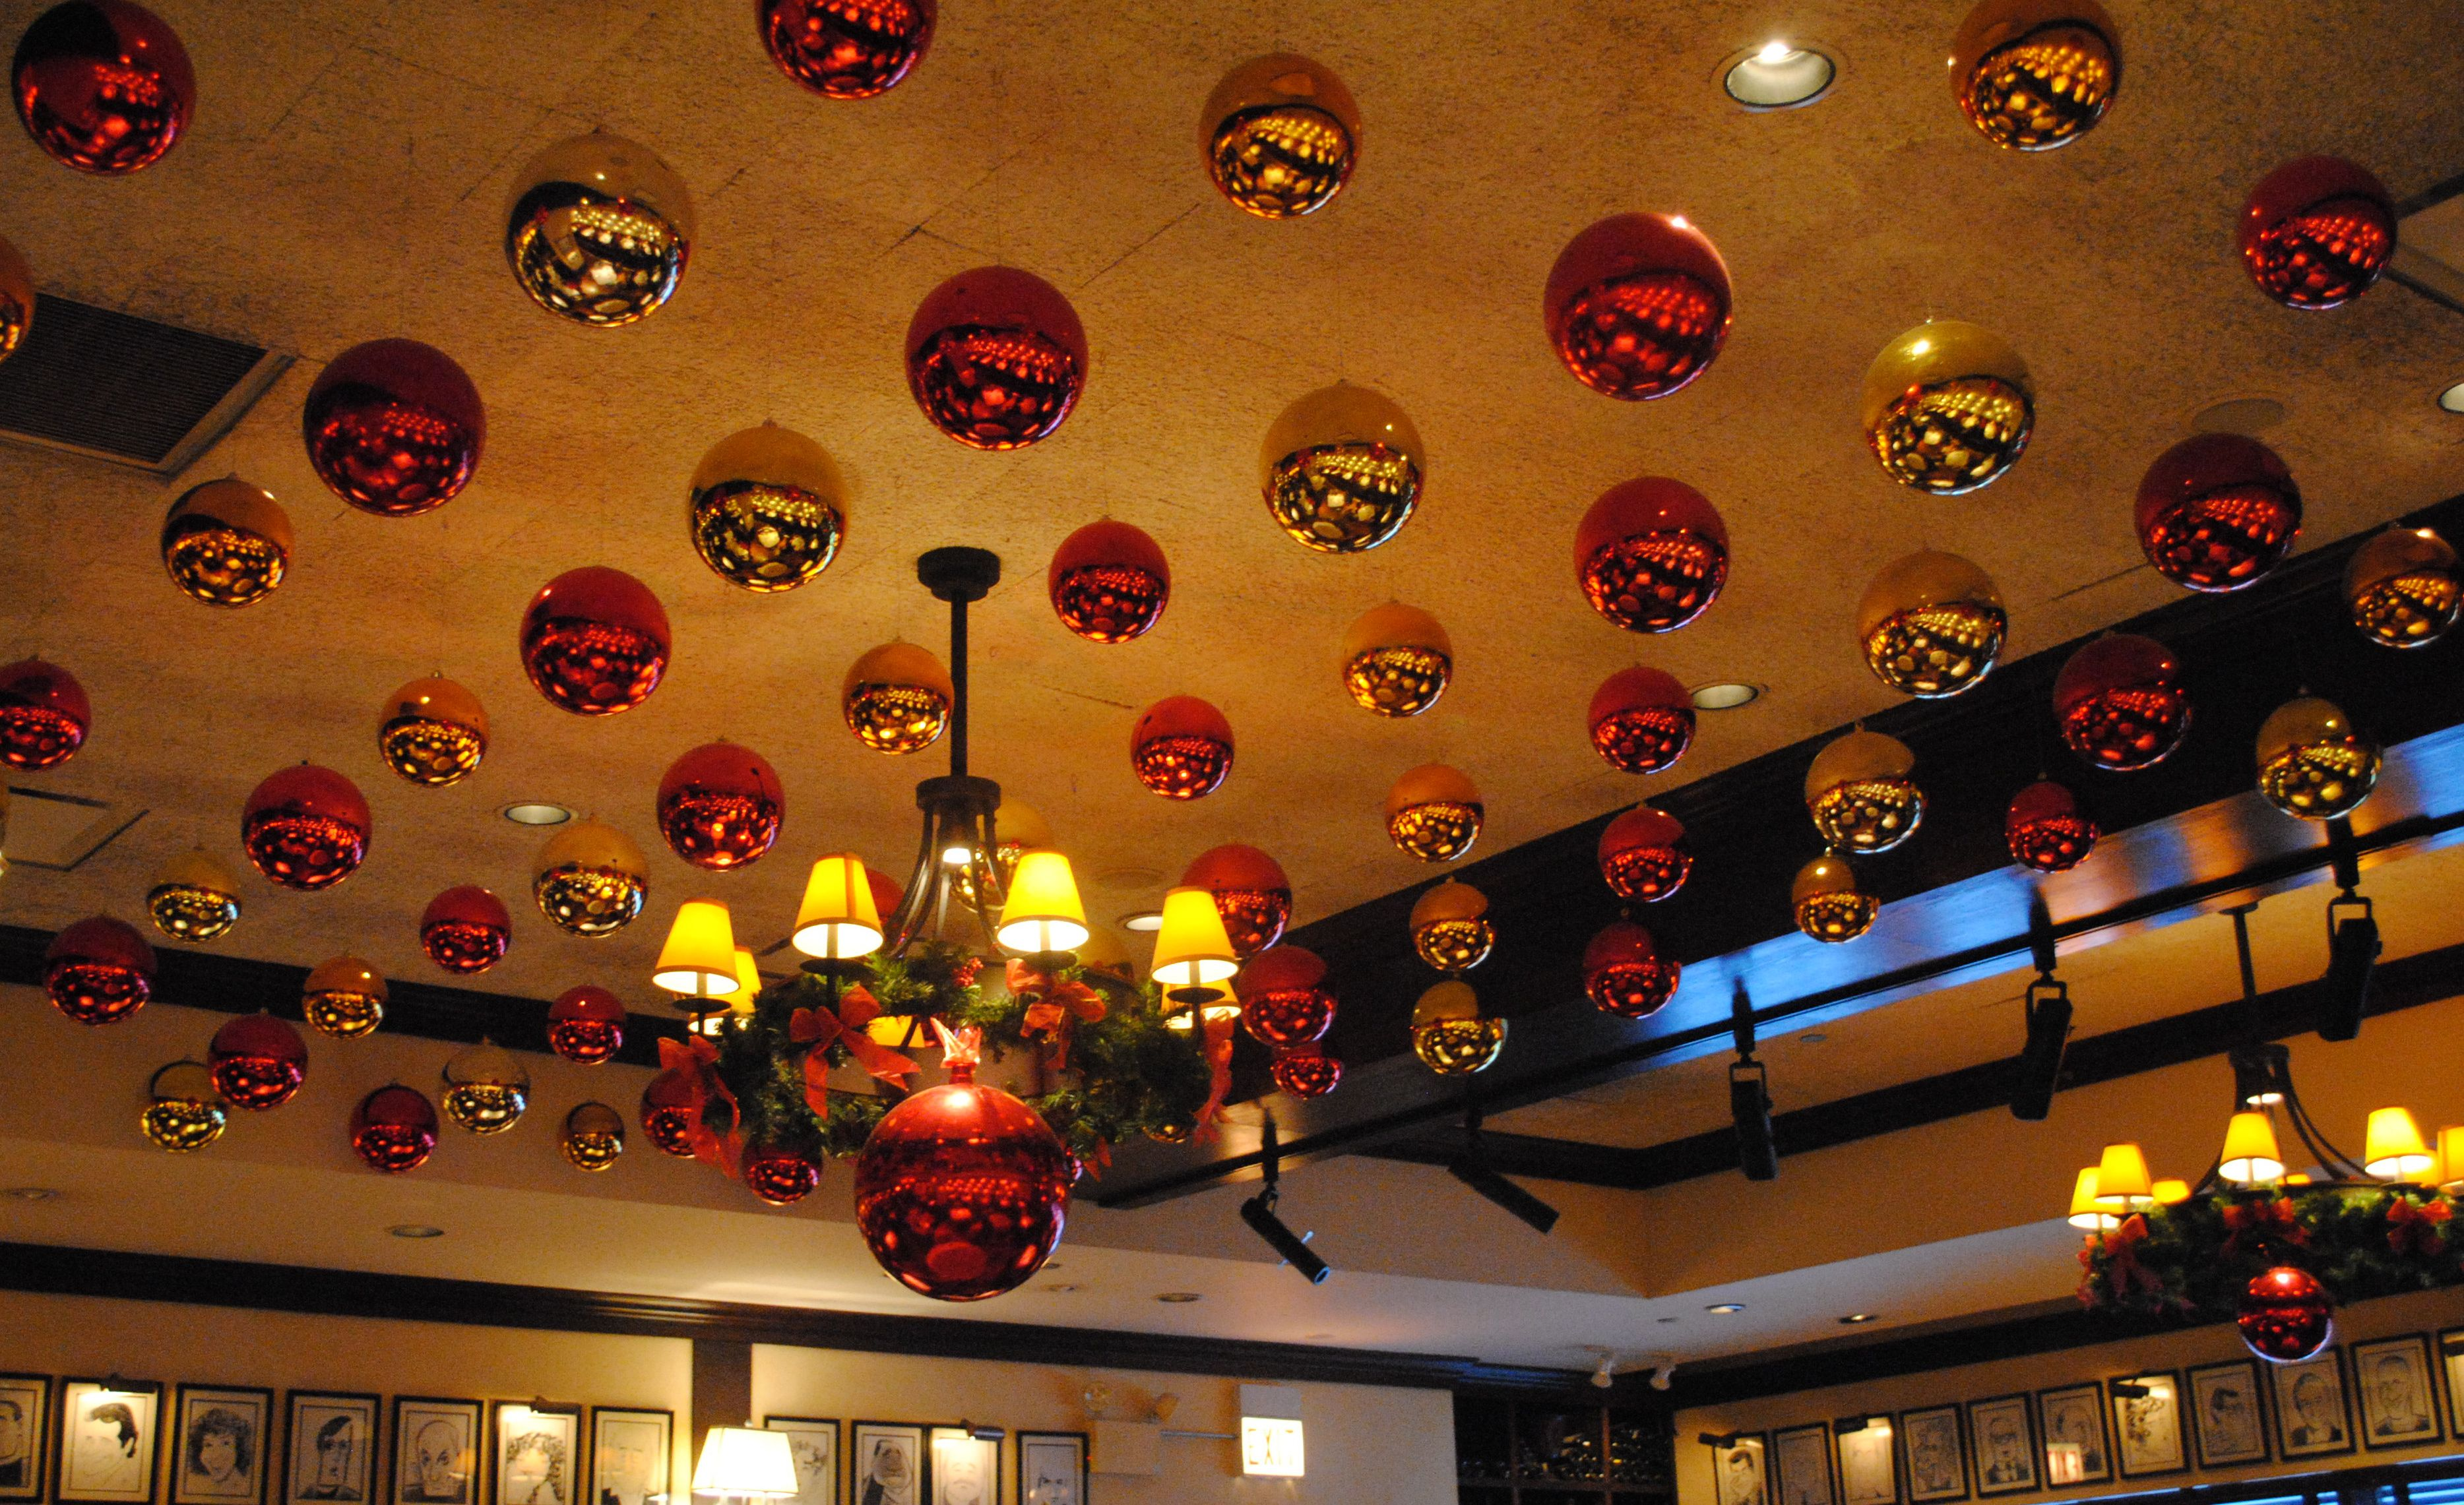 The restaurant and saw all decorations however fun